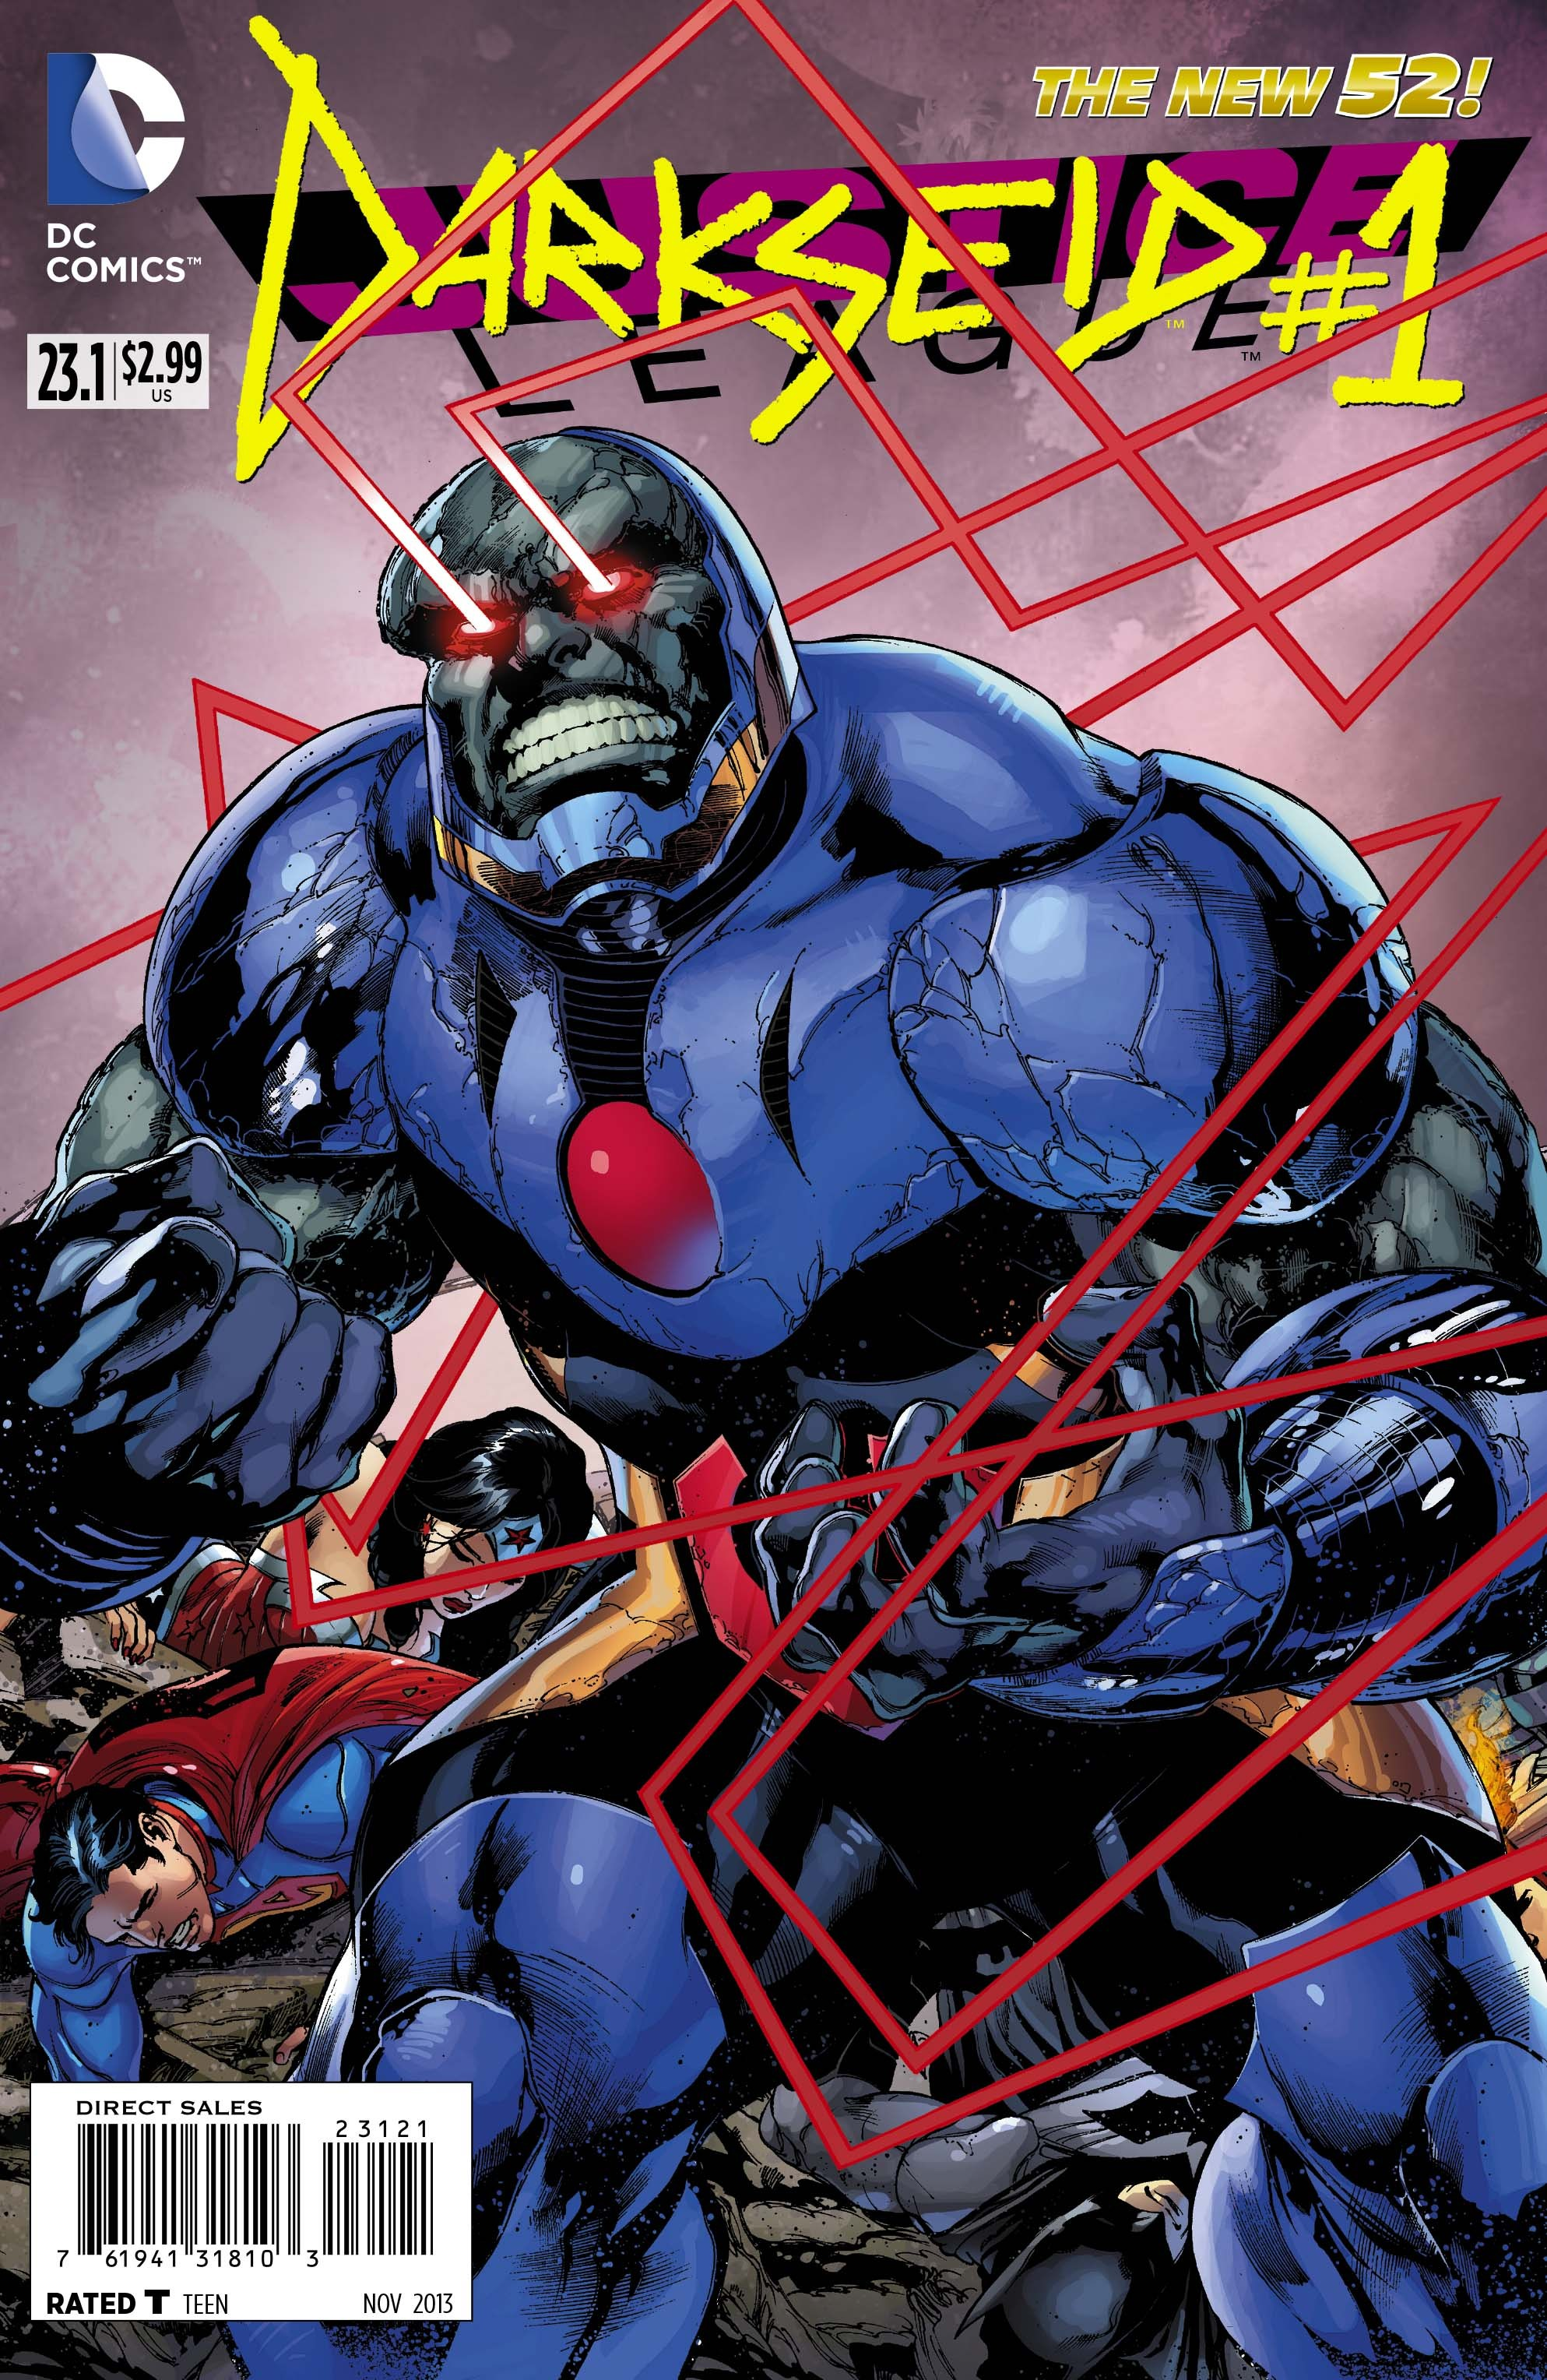 Justice League #23.1 - Darkseid review